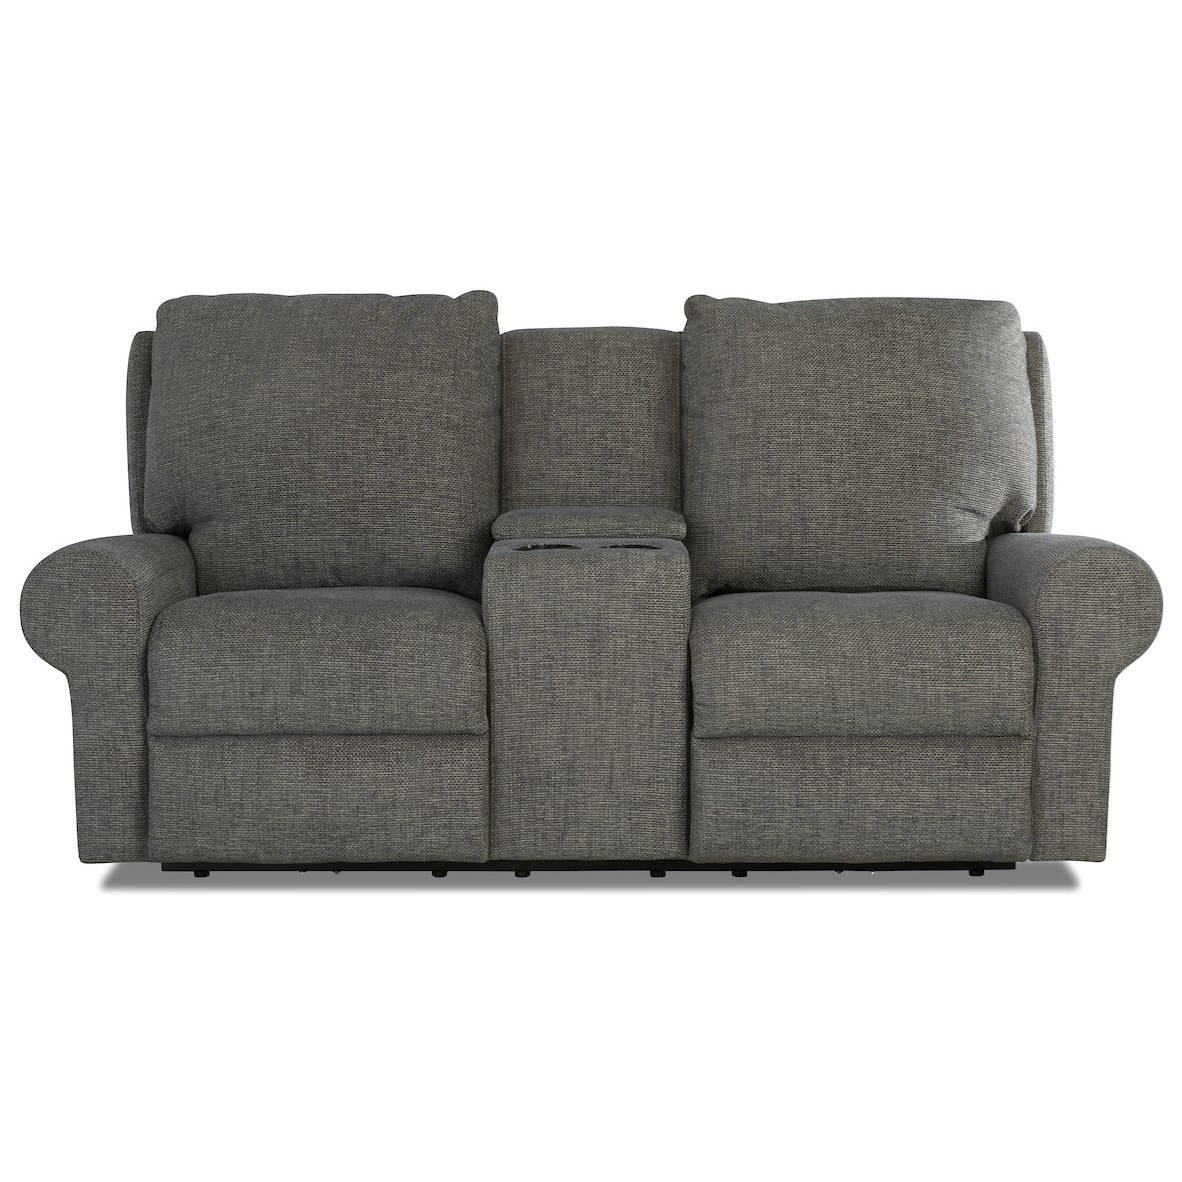 Eddison Power Console Reclining Loveseat w/ Pwr Head by Klaussner at Johnny Janosik